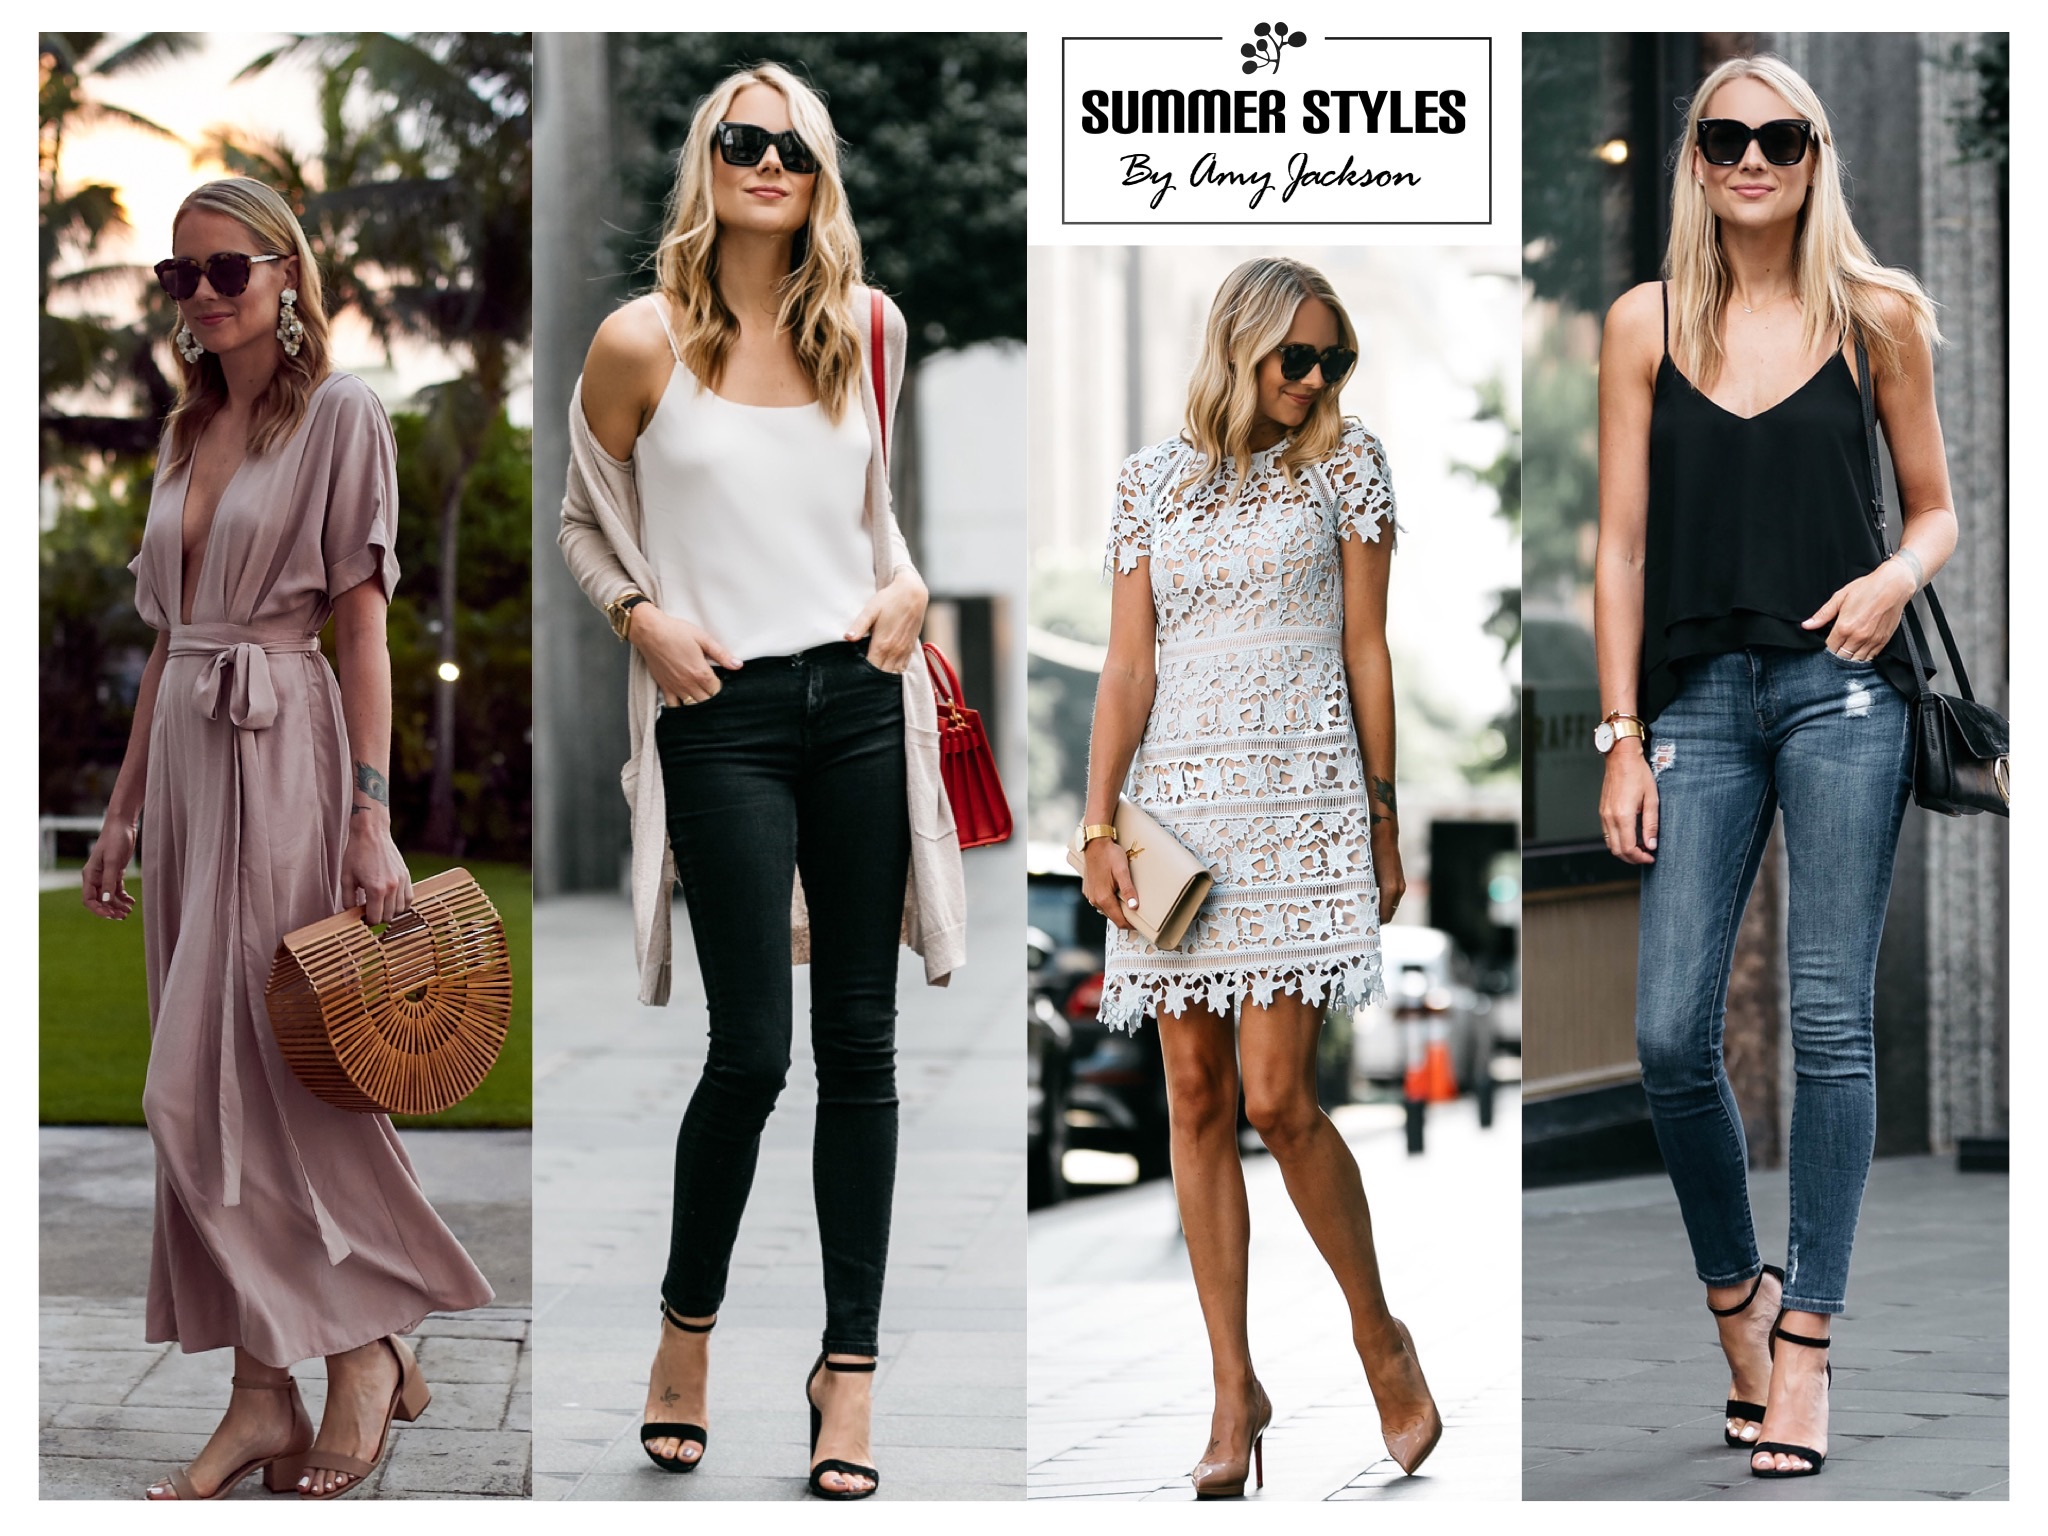 Summer styles by Amy Jackson